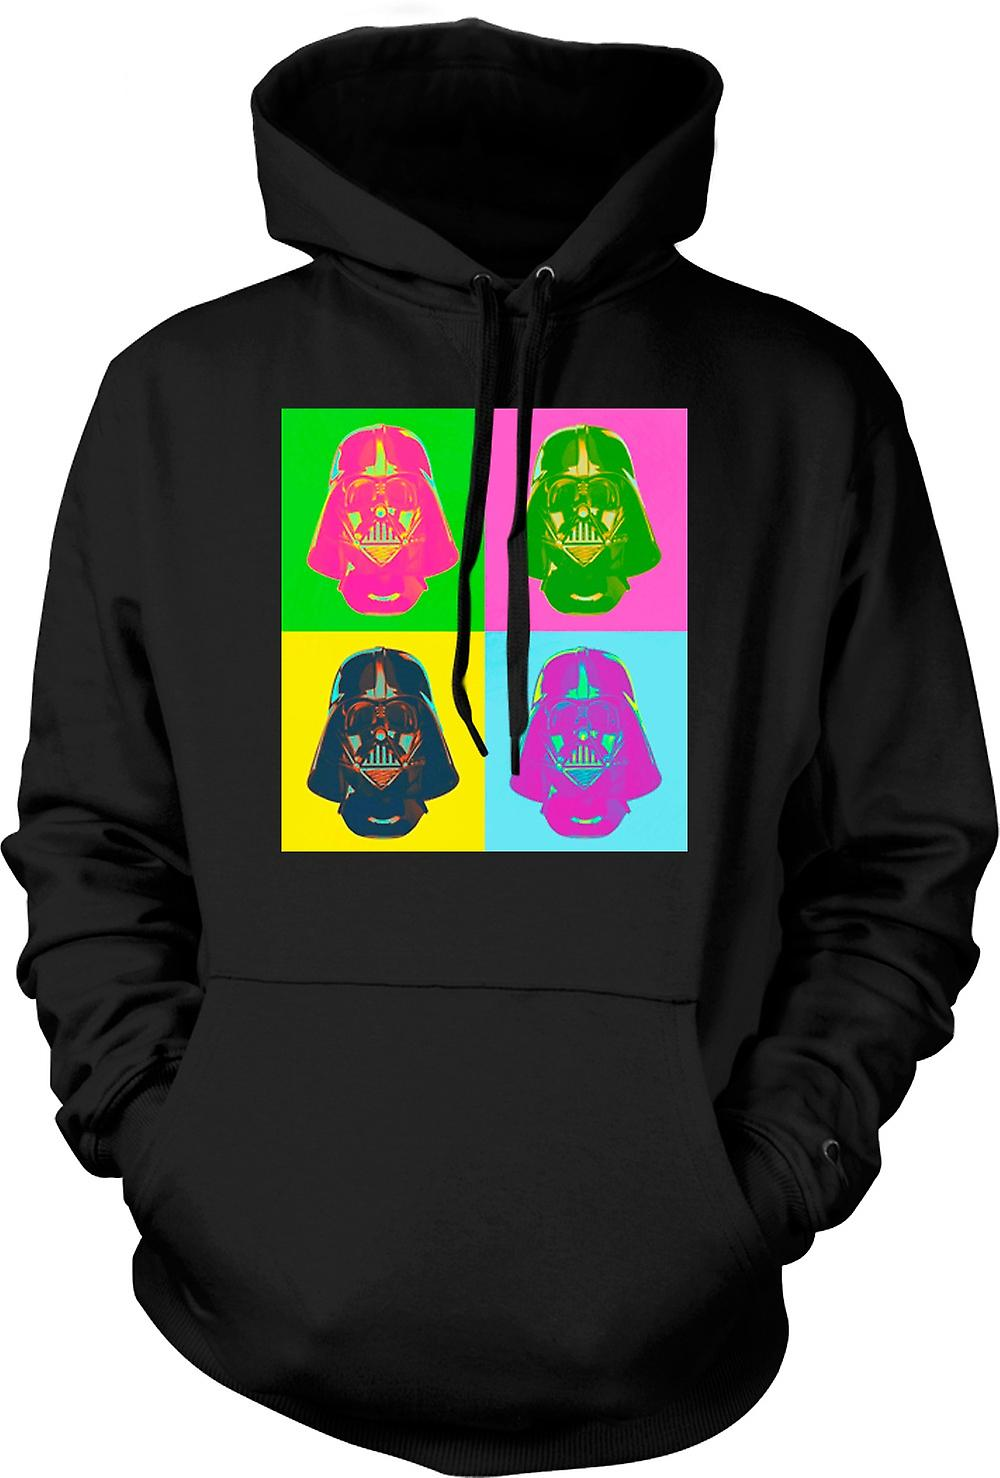 Enfant Sweat Capuche - Darth Vader - Star Wars - Warhol